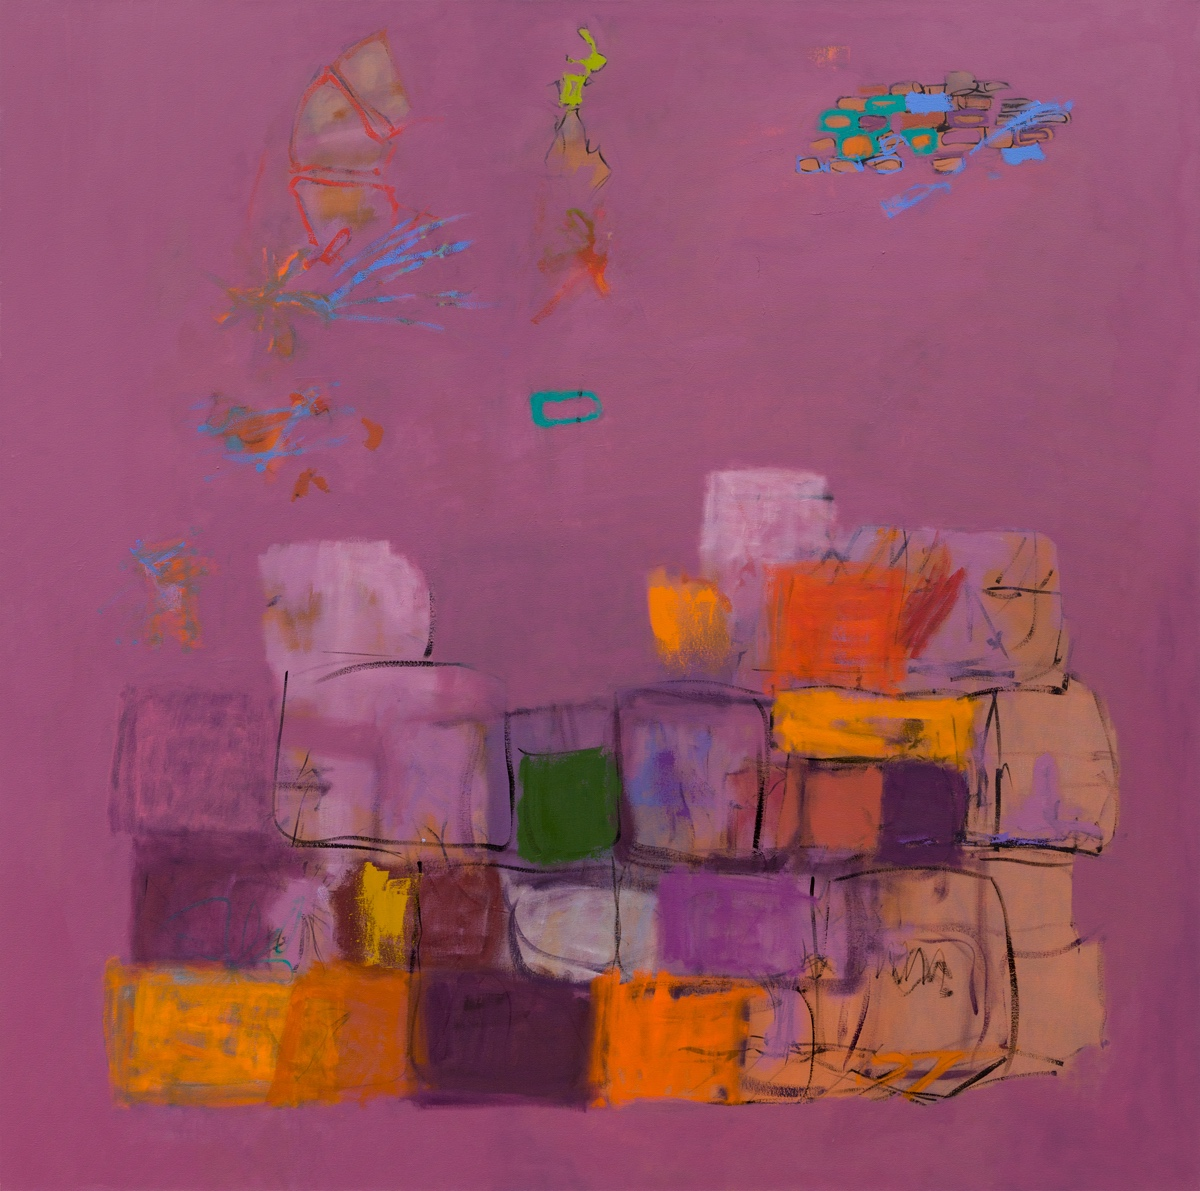 Wall (Violet)   152x152cm (60x60in) Oil on canvas